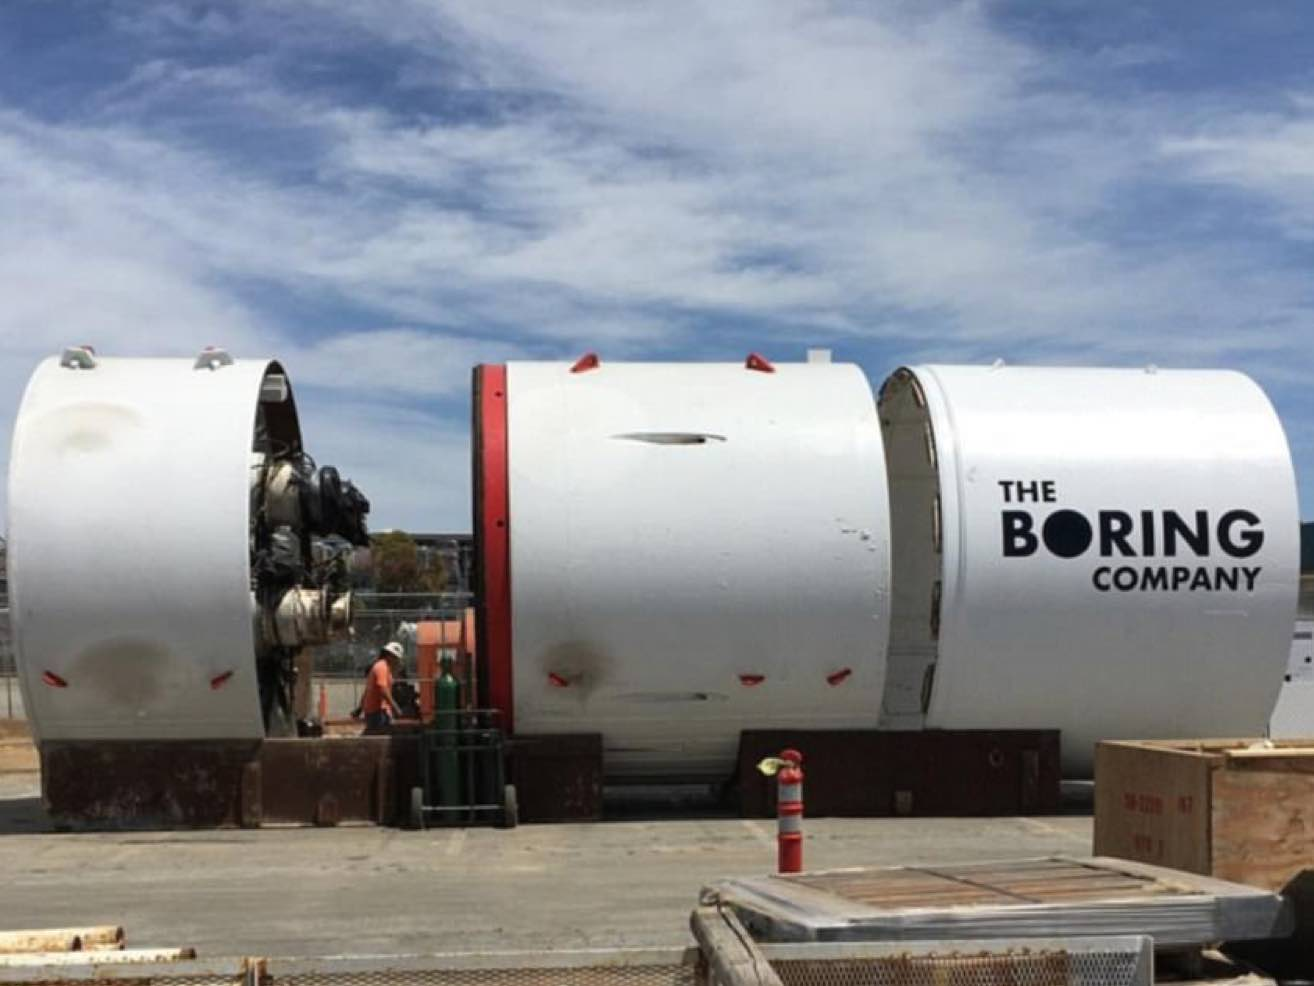 old tunnel boring machine juxtaposed with elon musk's boring company machine